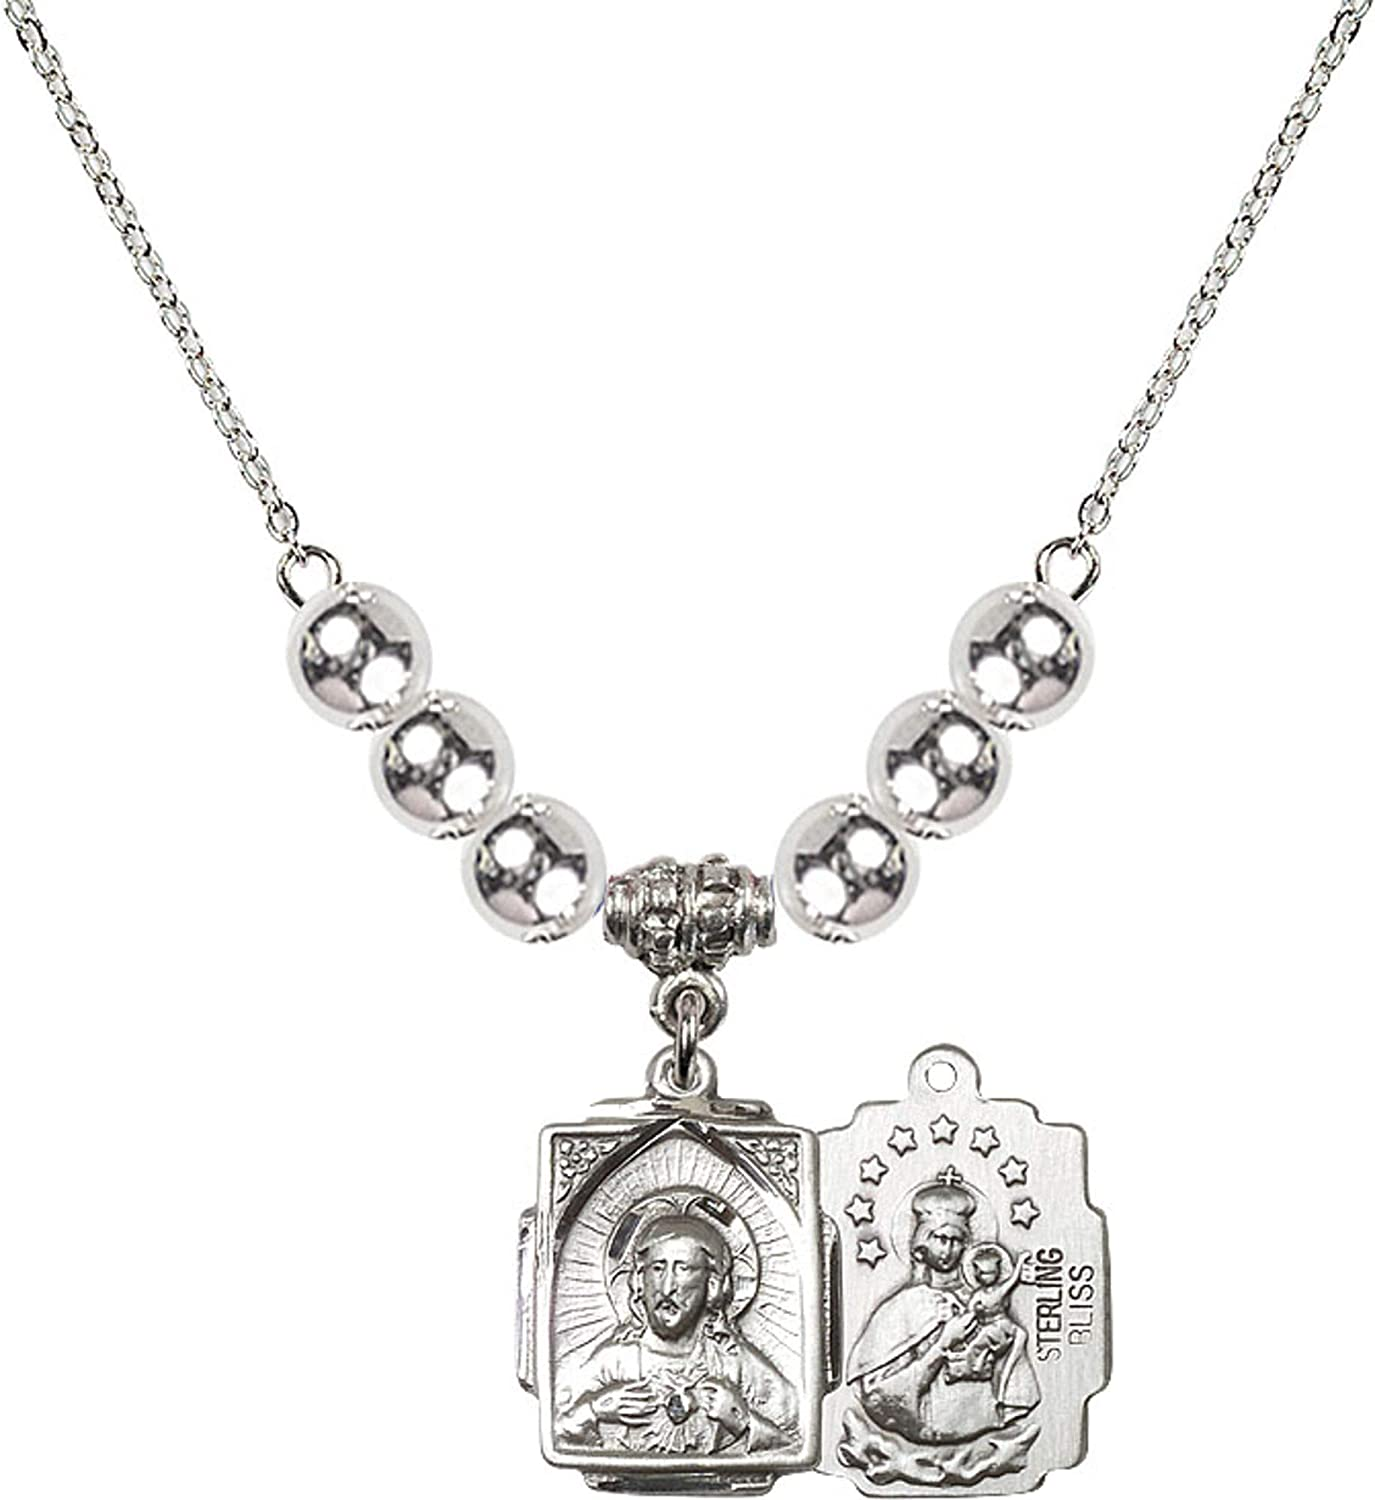 Bonyak Jewelry 18 Inch Rhodium Plated Necklace w// 6mm Sterling Silver Beads and Scapular Charm